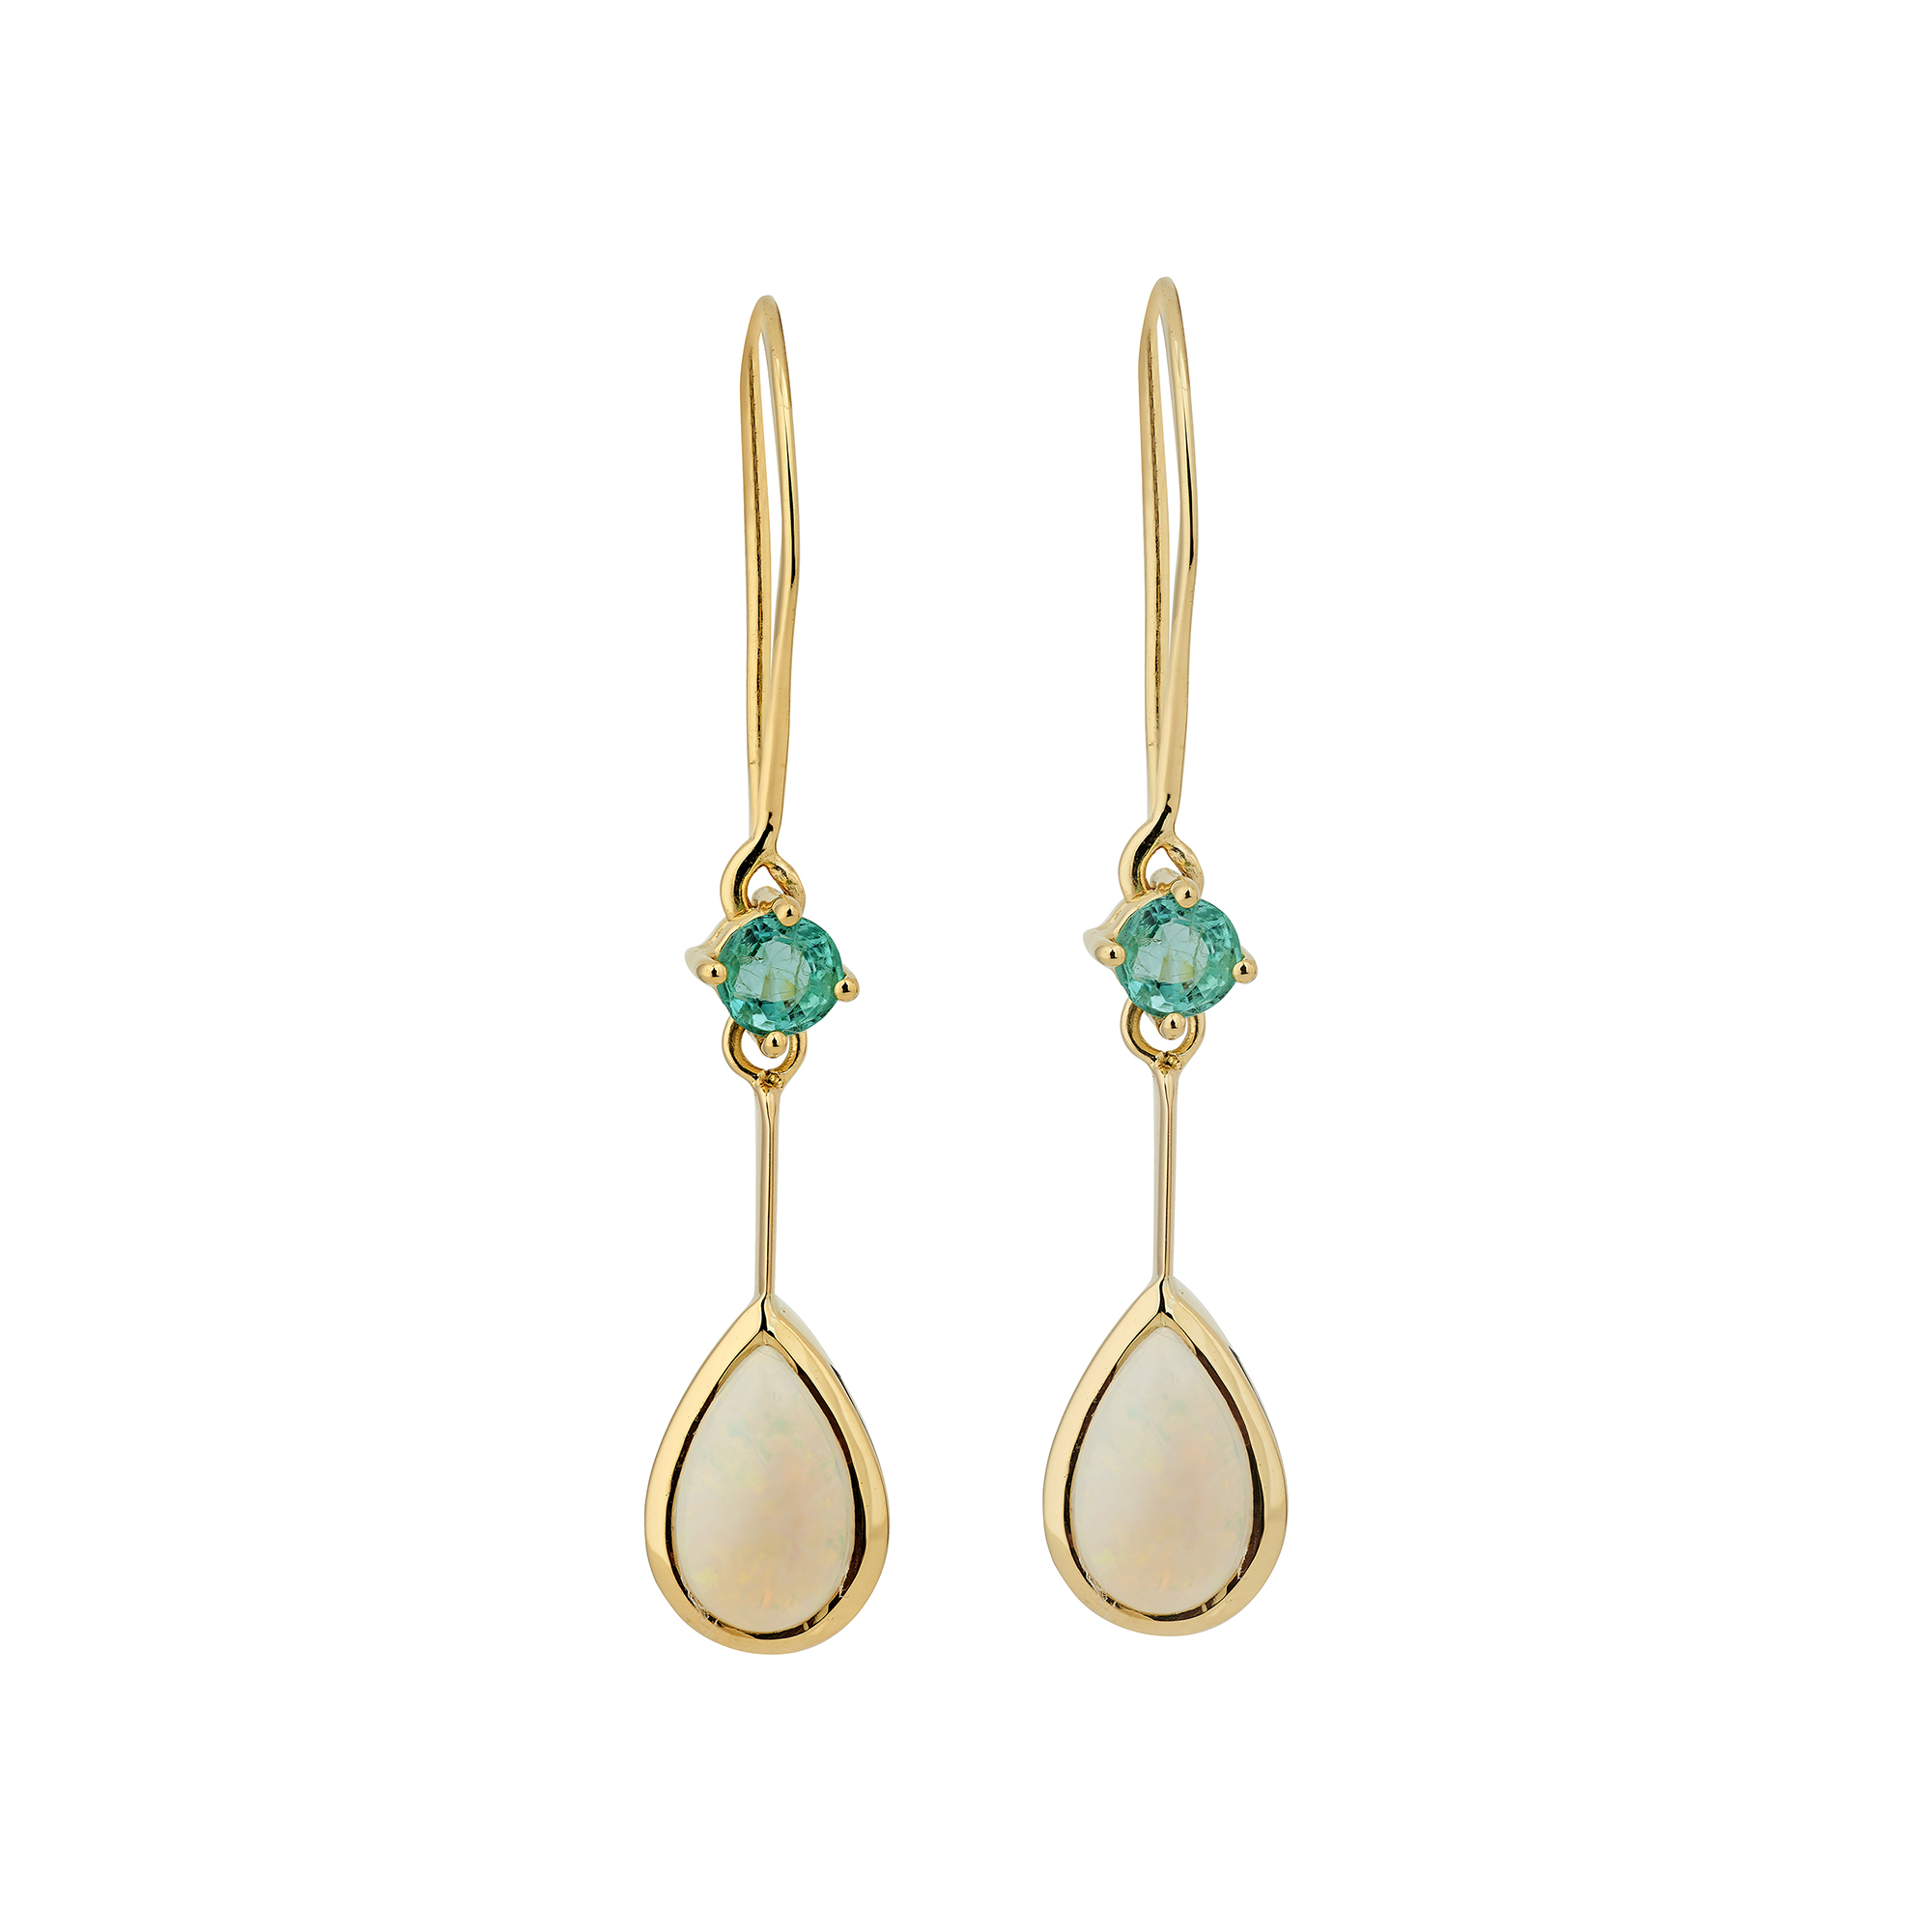 18ct Yellow Gold Emerald And Pear Shaped Opal Earrings